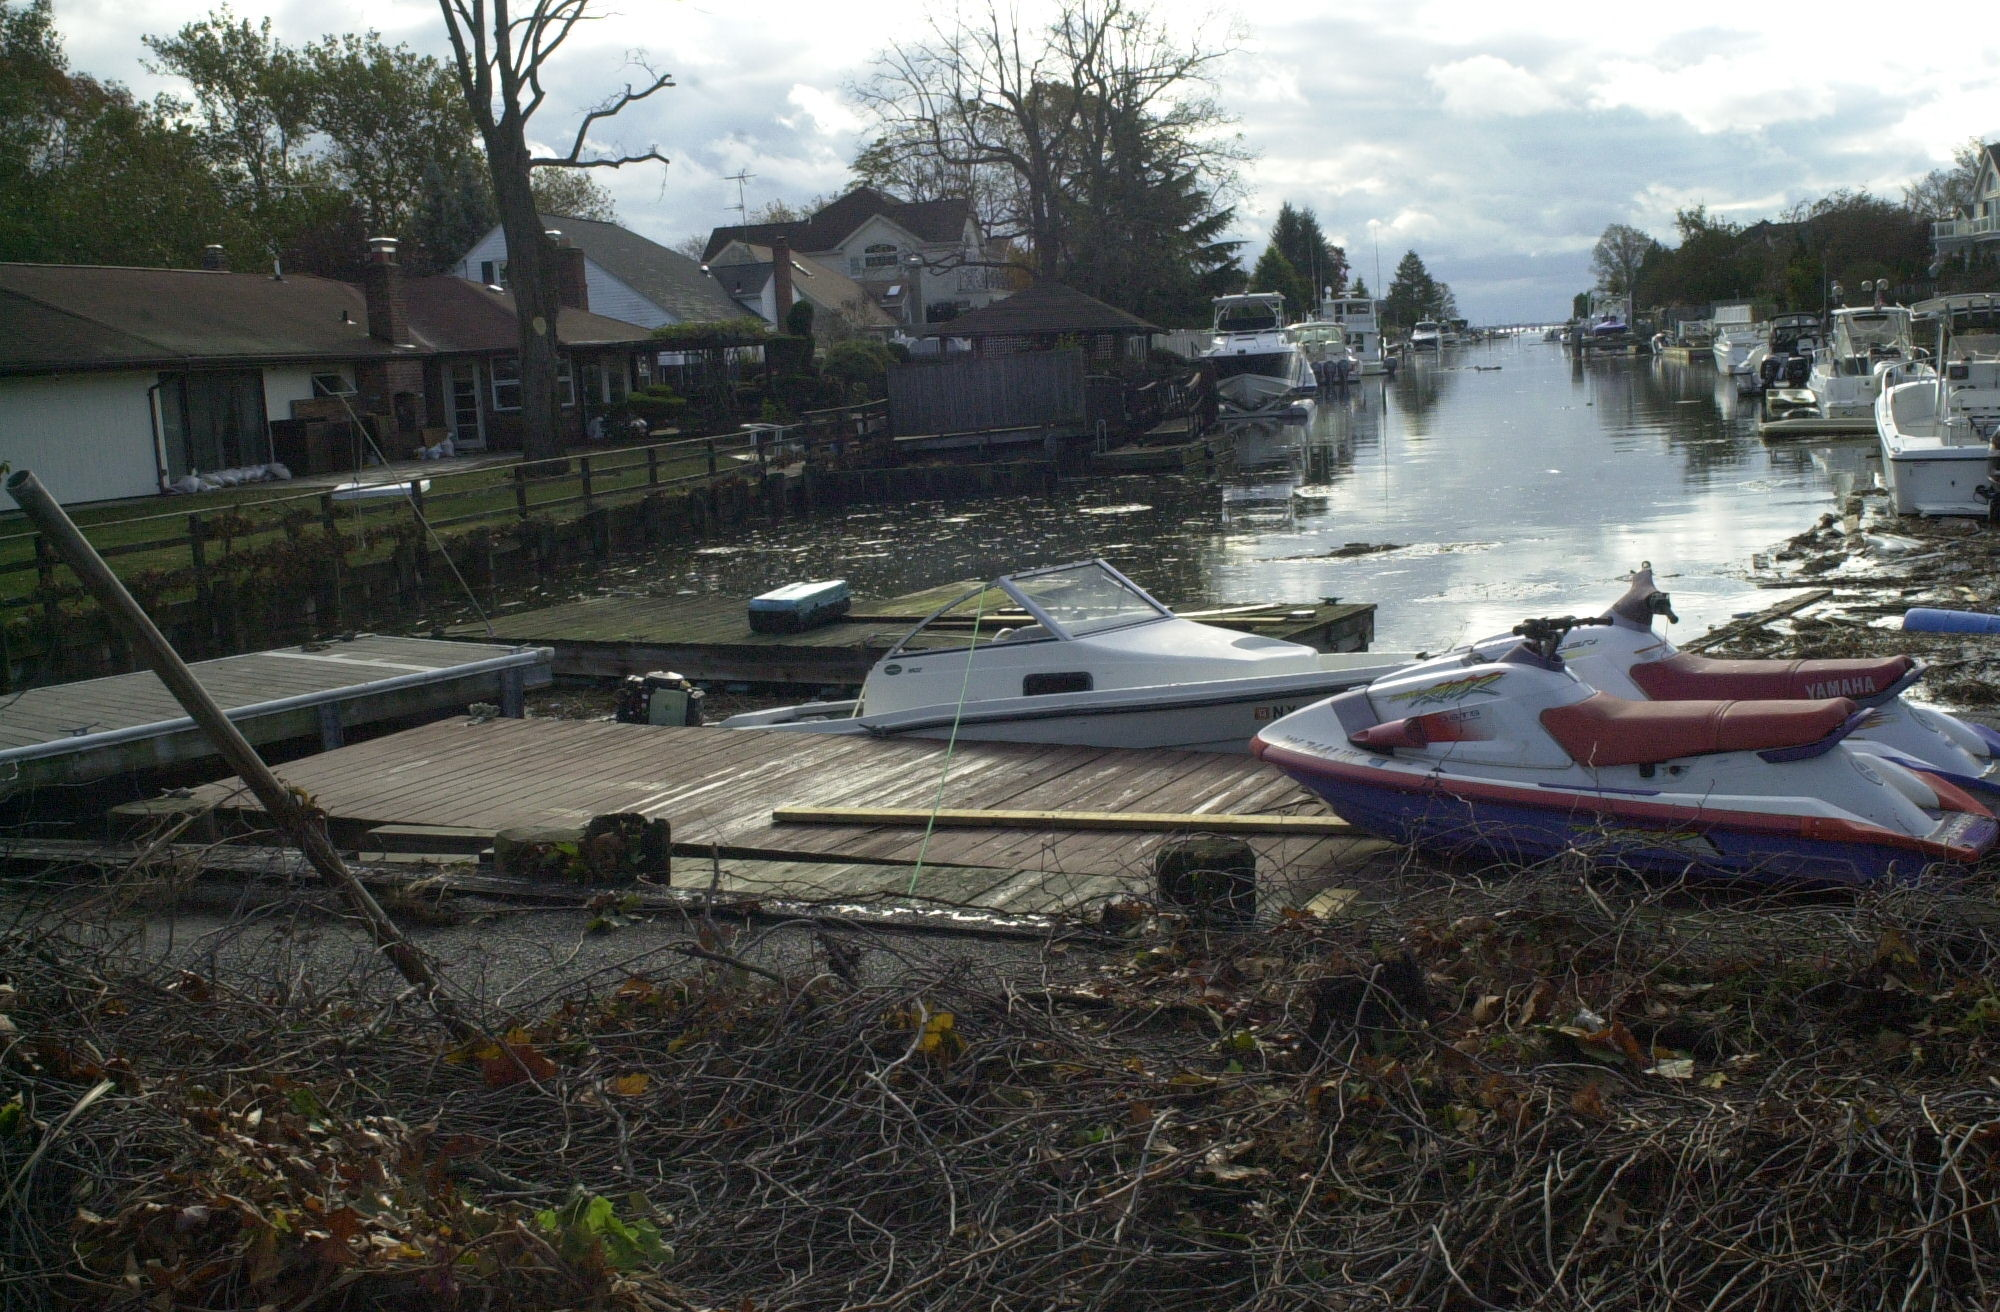 During Hurricane Sandy, a 10-foot tidal surge raced up the canal that leads to Cammans Pond in south Merrick, scattering floating docks, personal watercraft and boats and causing flooding on local streets. Storm-drain flapper valves would have done nothing to stop that surge, said Brian Schneider, deputy commissioner of the Nassau County Department of Public Works.